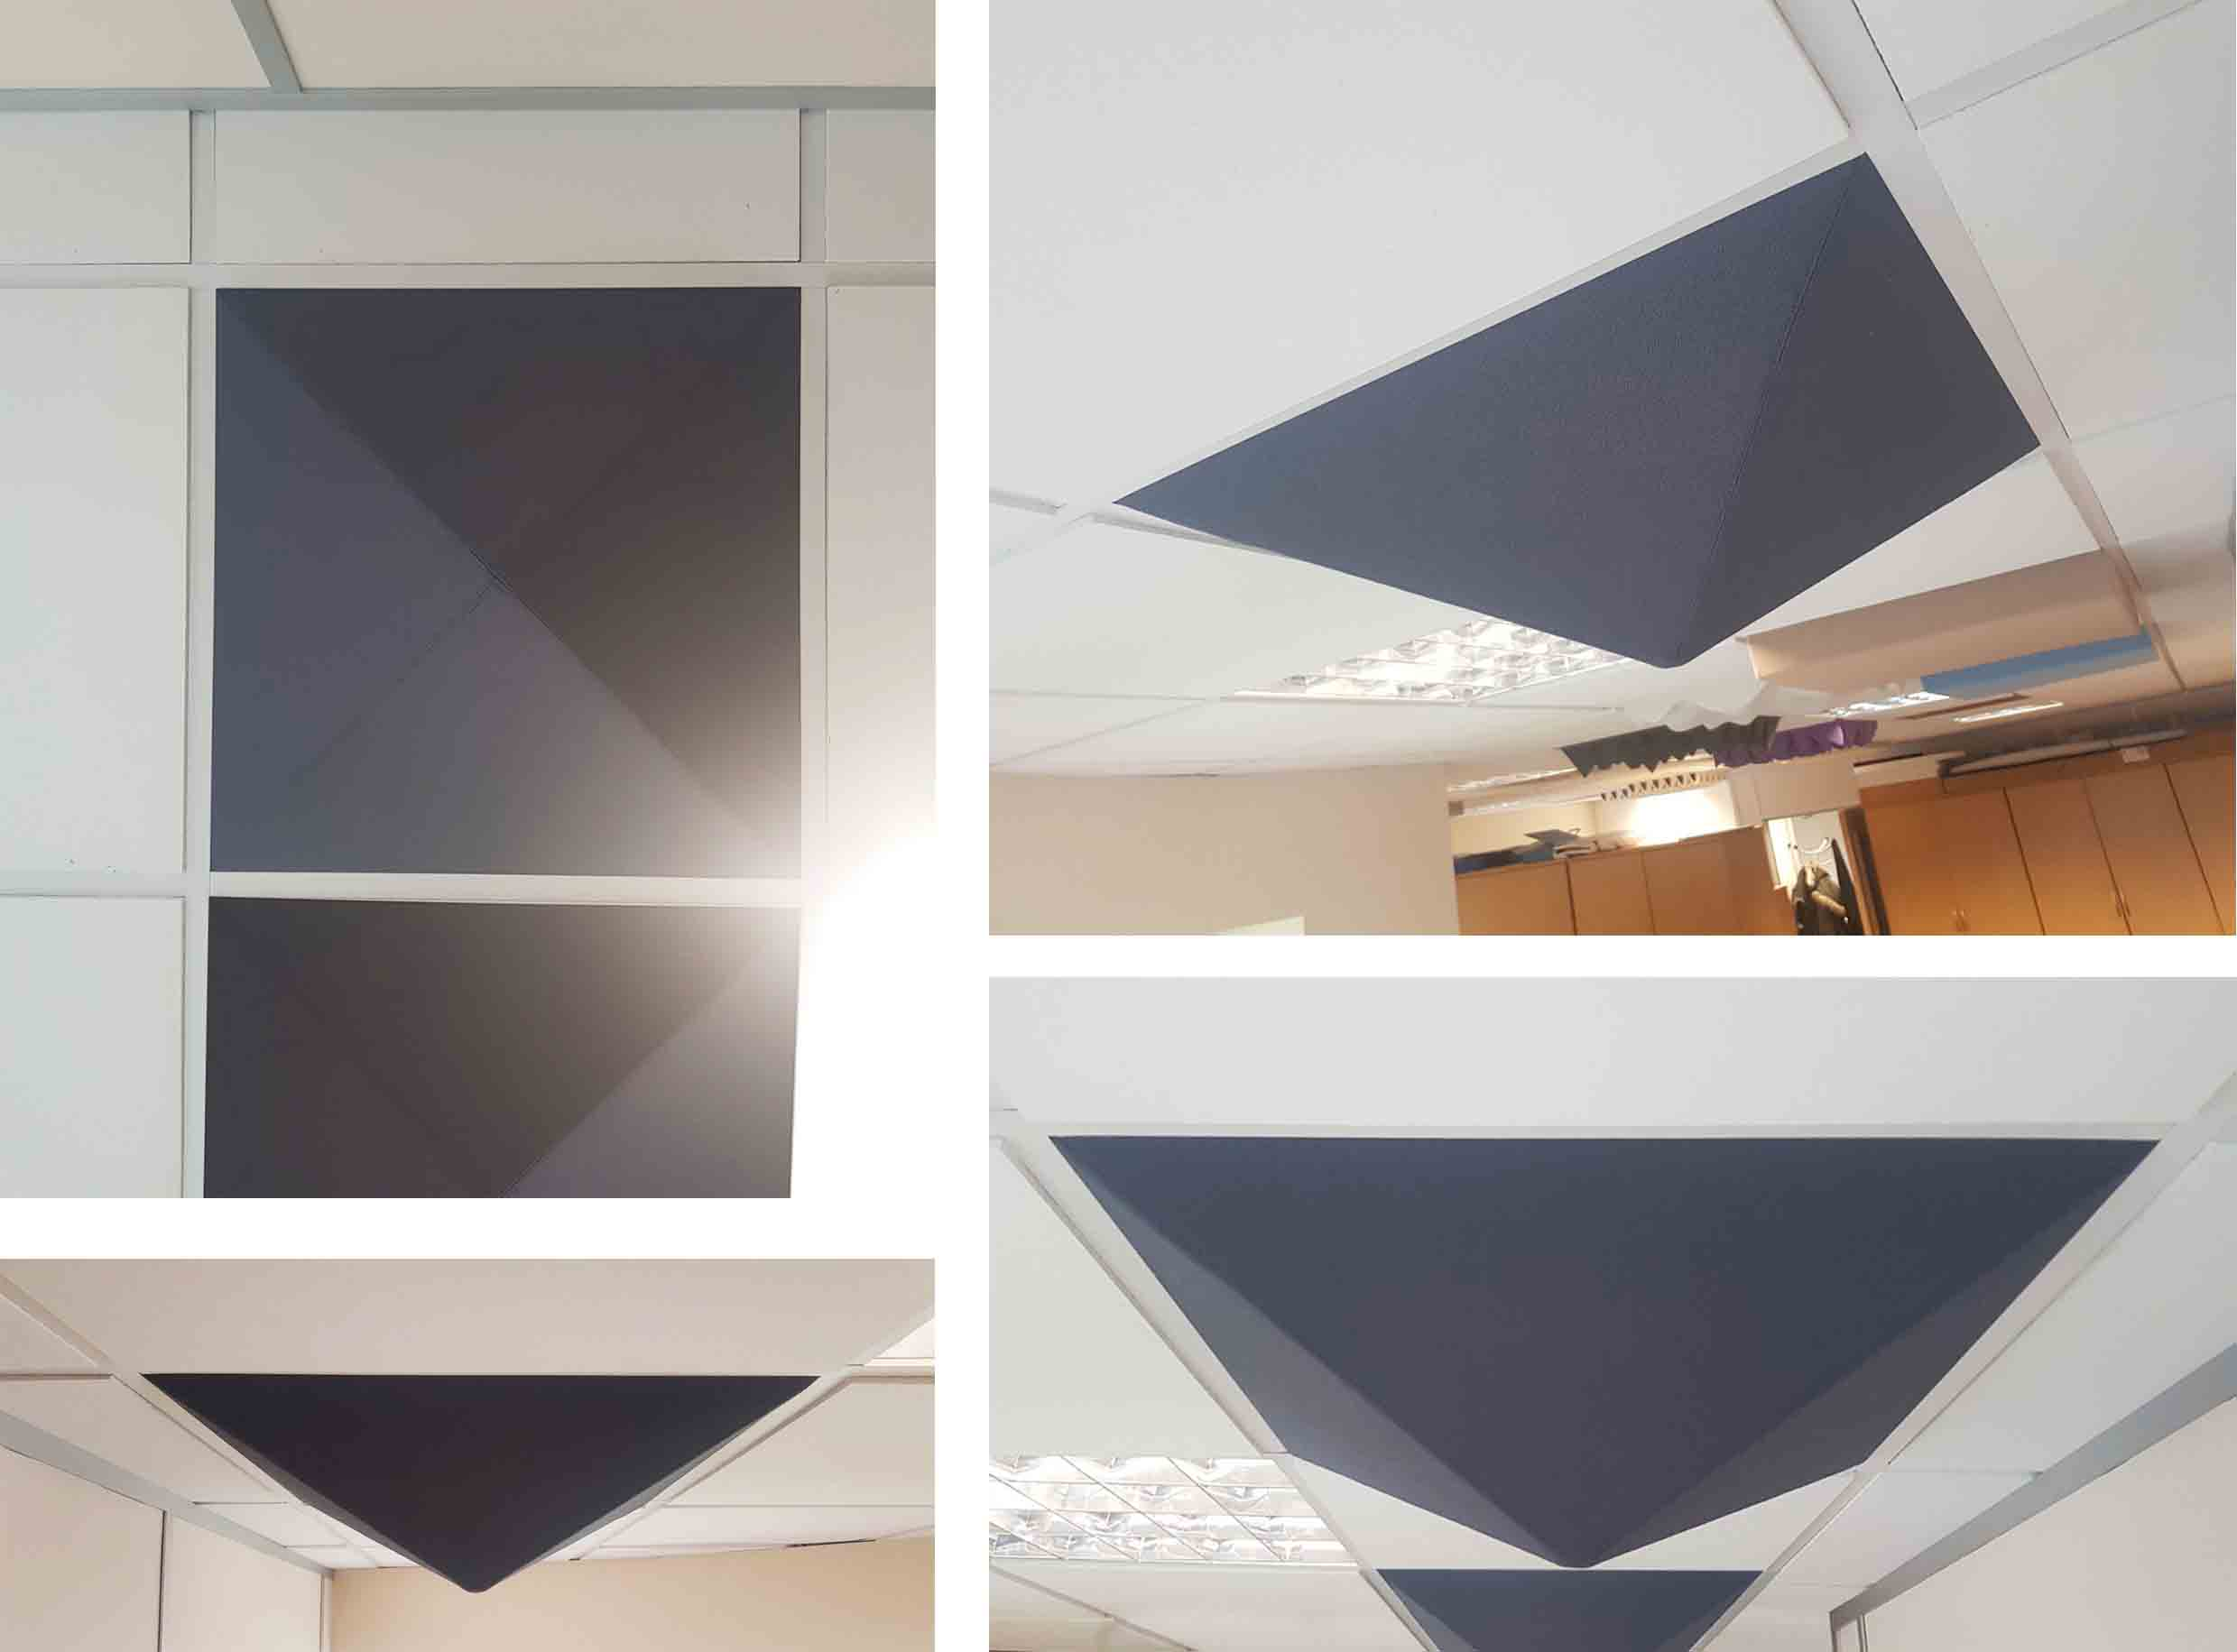 Pyramid acoustic ceiling tile in T24 suspended ceiling grid